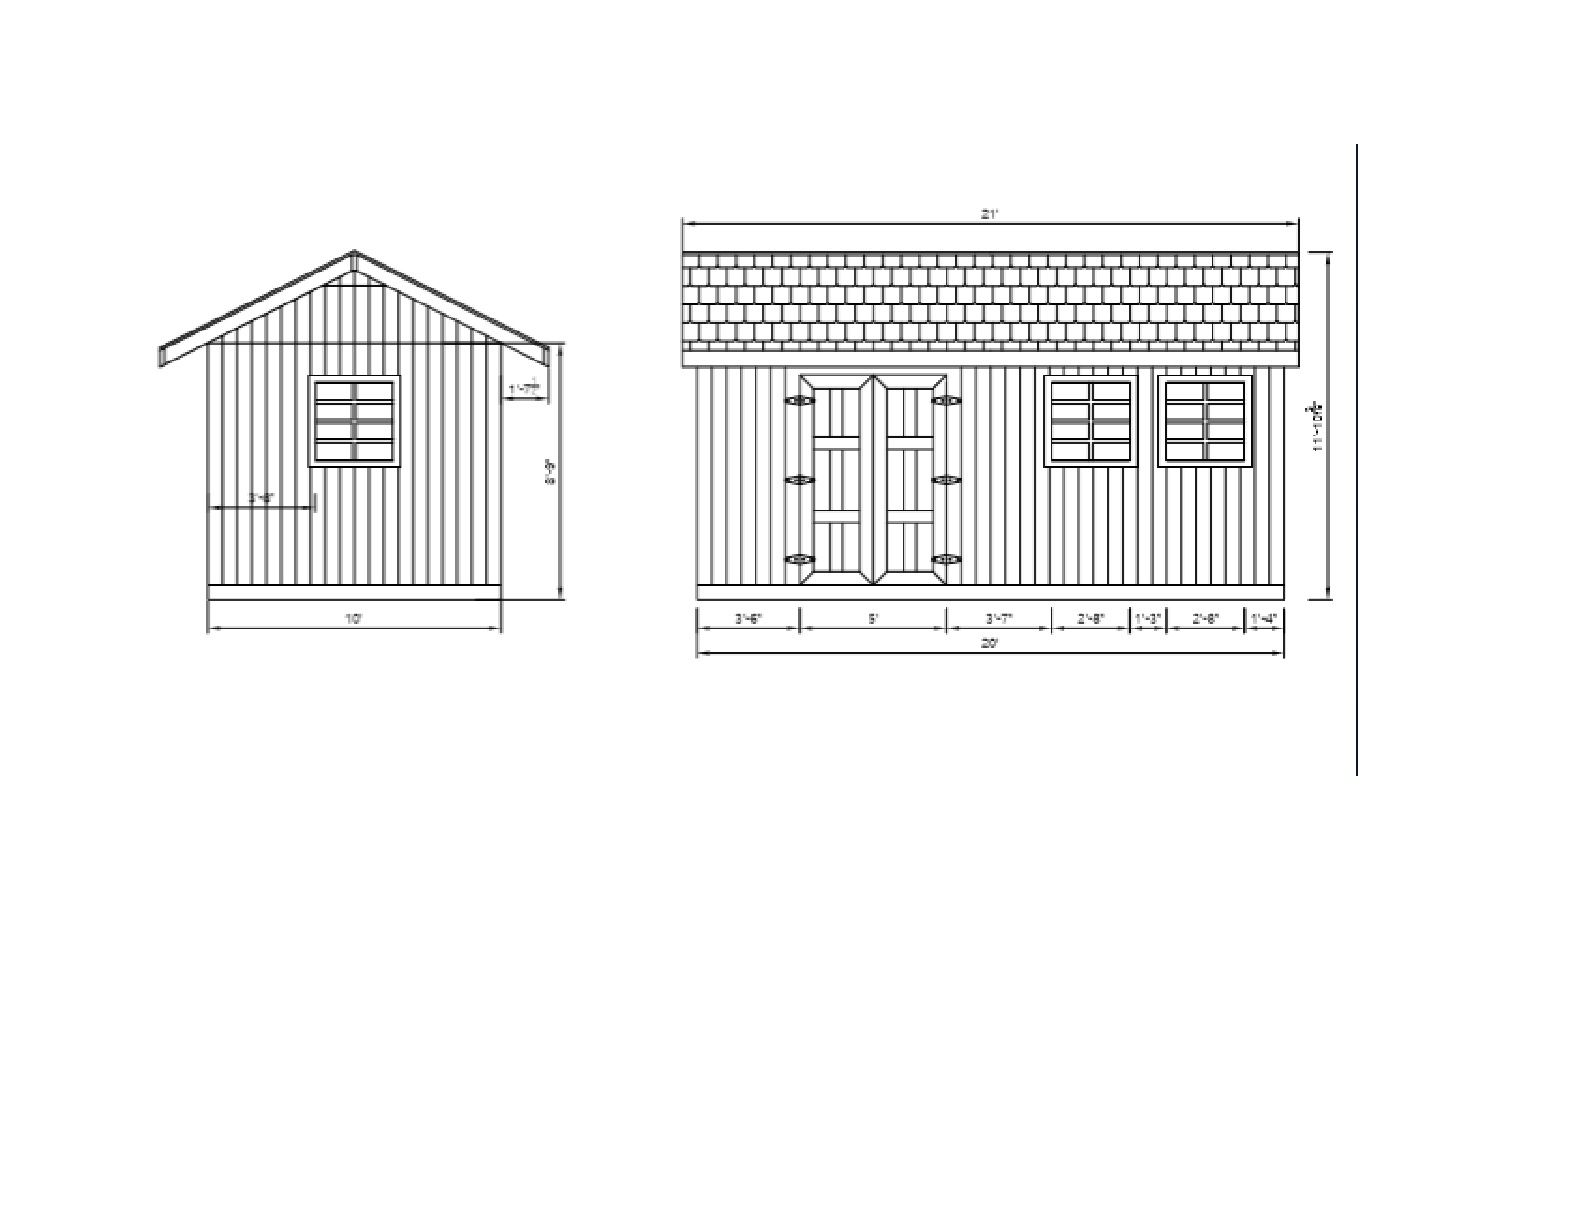 Garden Storage Shed Plans Diy Gable Roof Design Backyard Utility House 10 X 20 Storage Shed Plans Garden Storage Shed Gable Roof Design